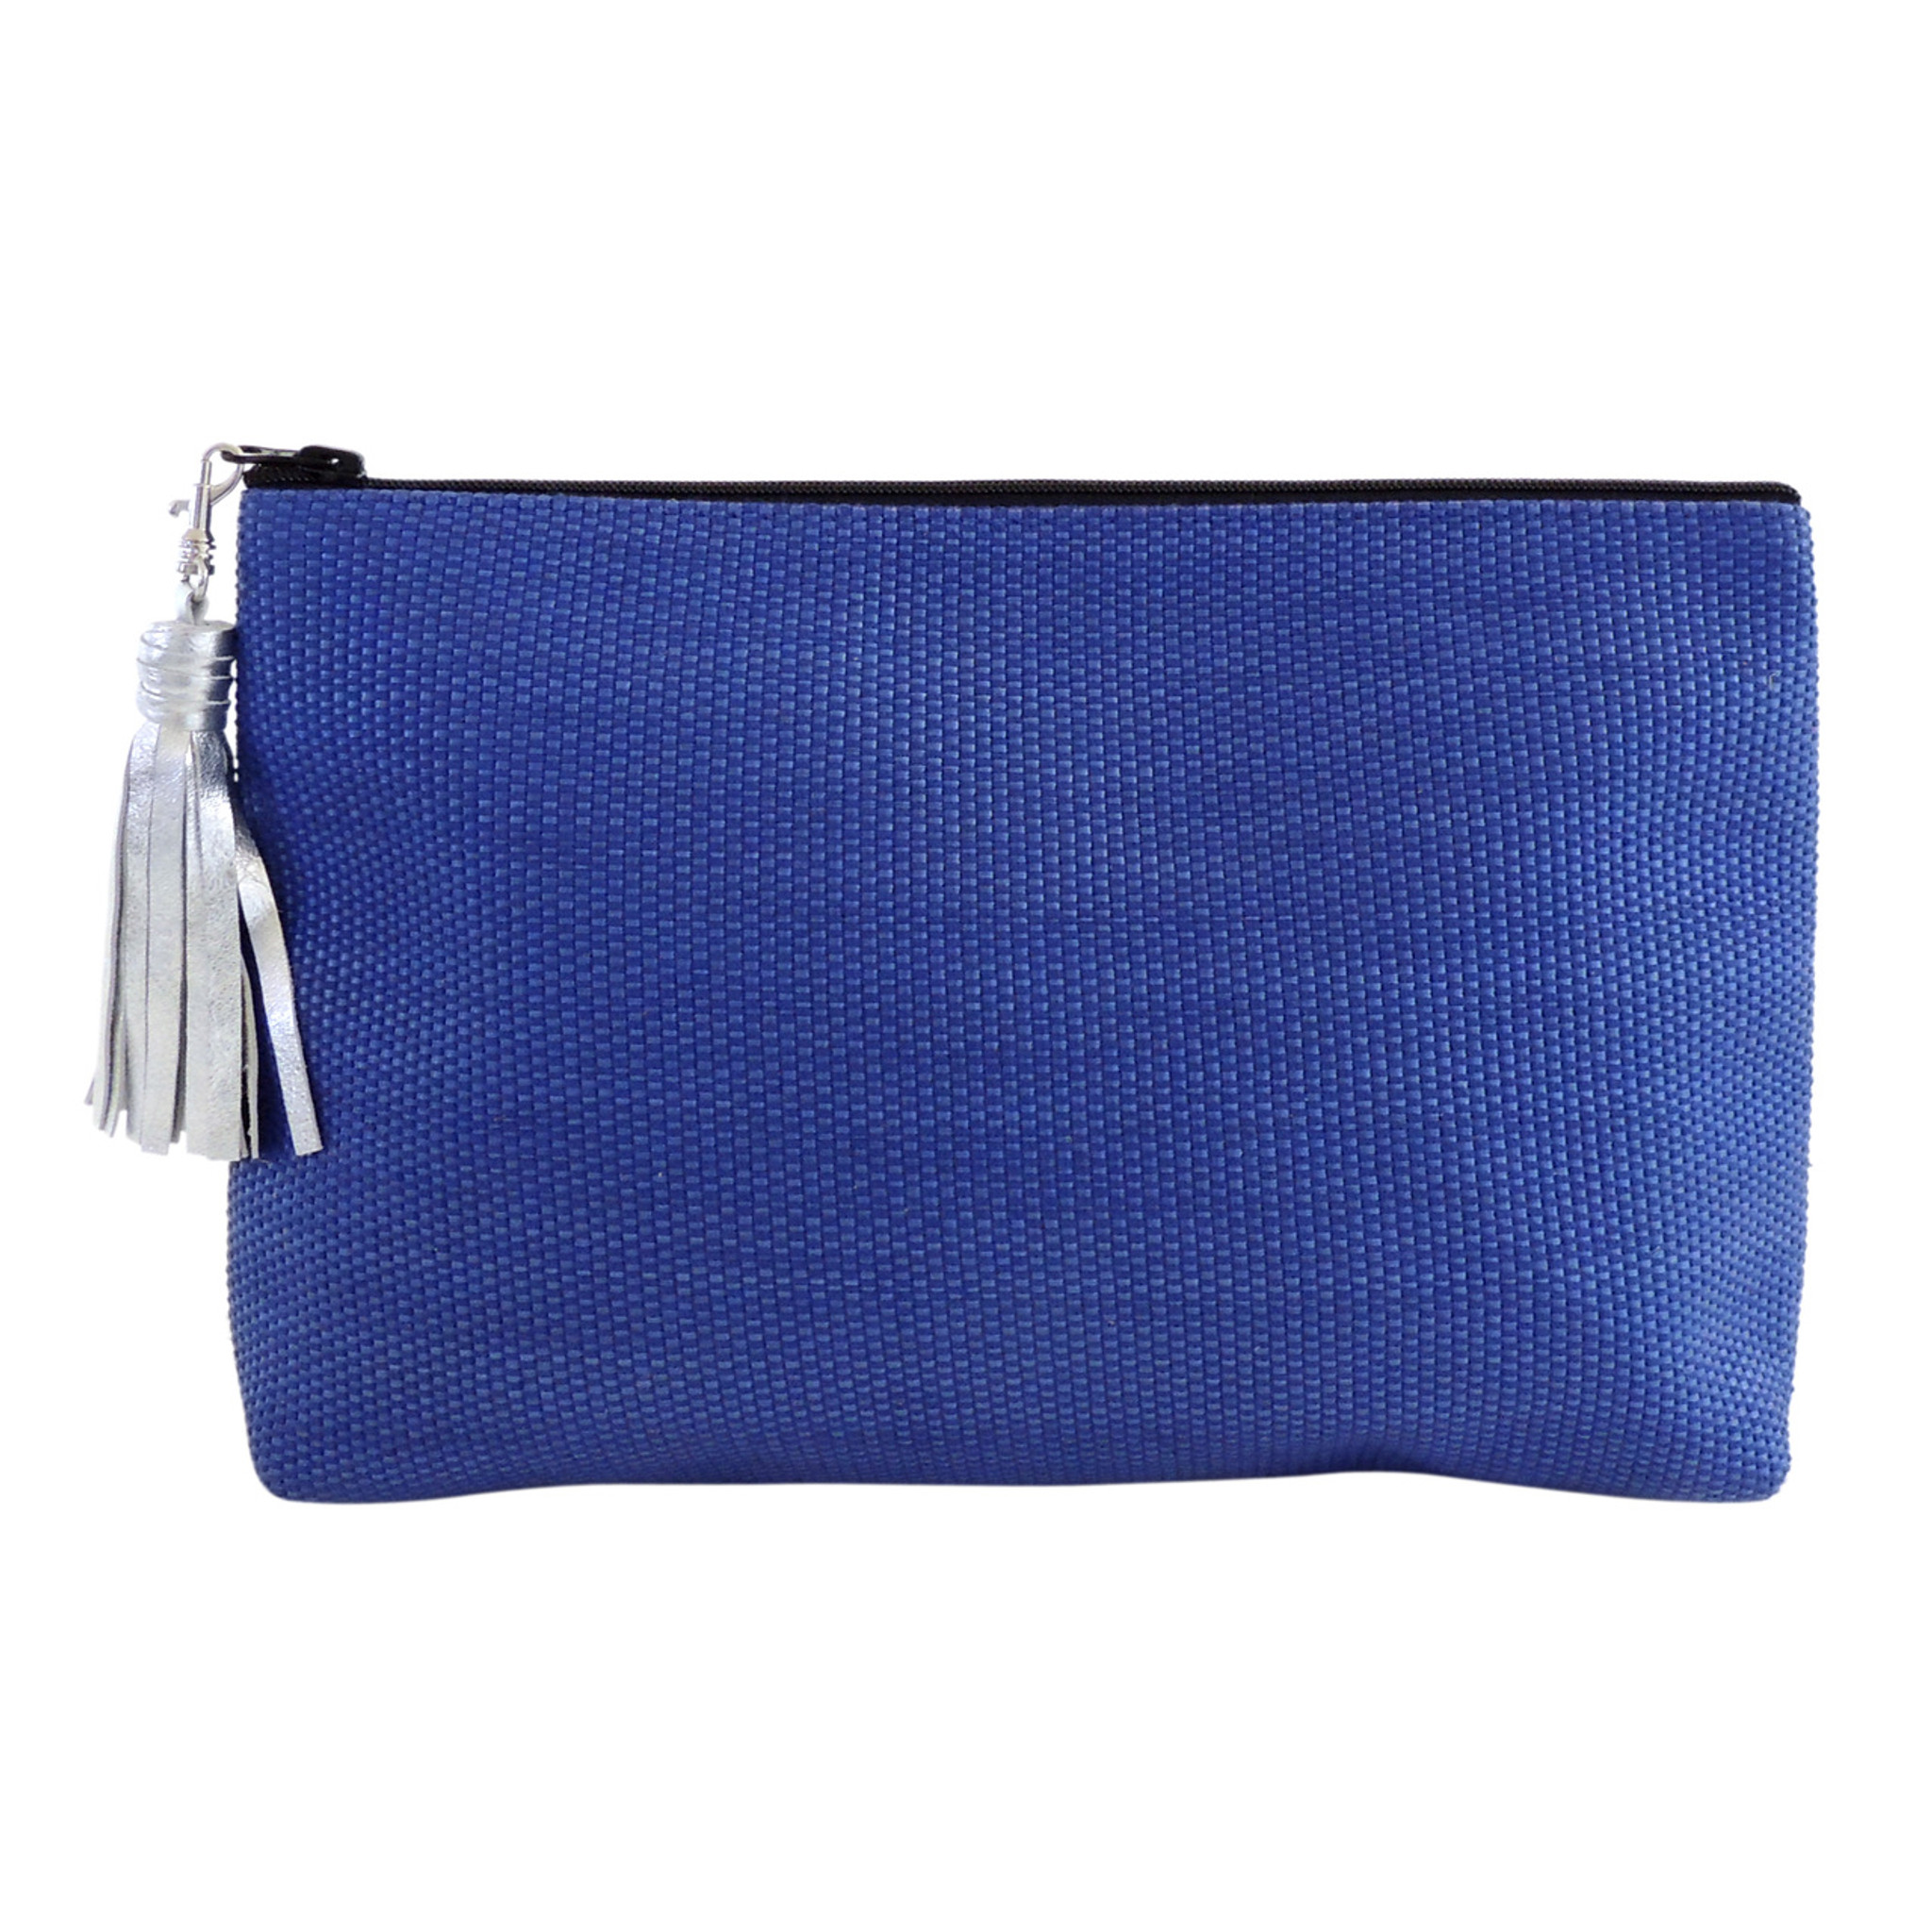 Small Silver Leather Tassel, with Carryall Clutch